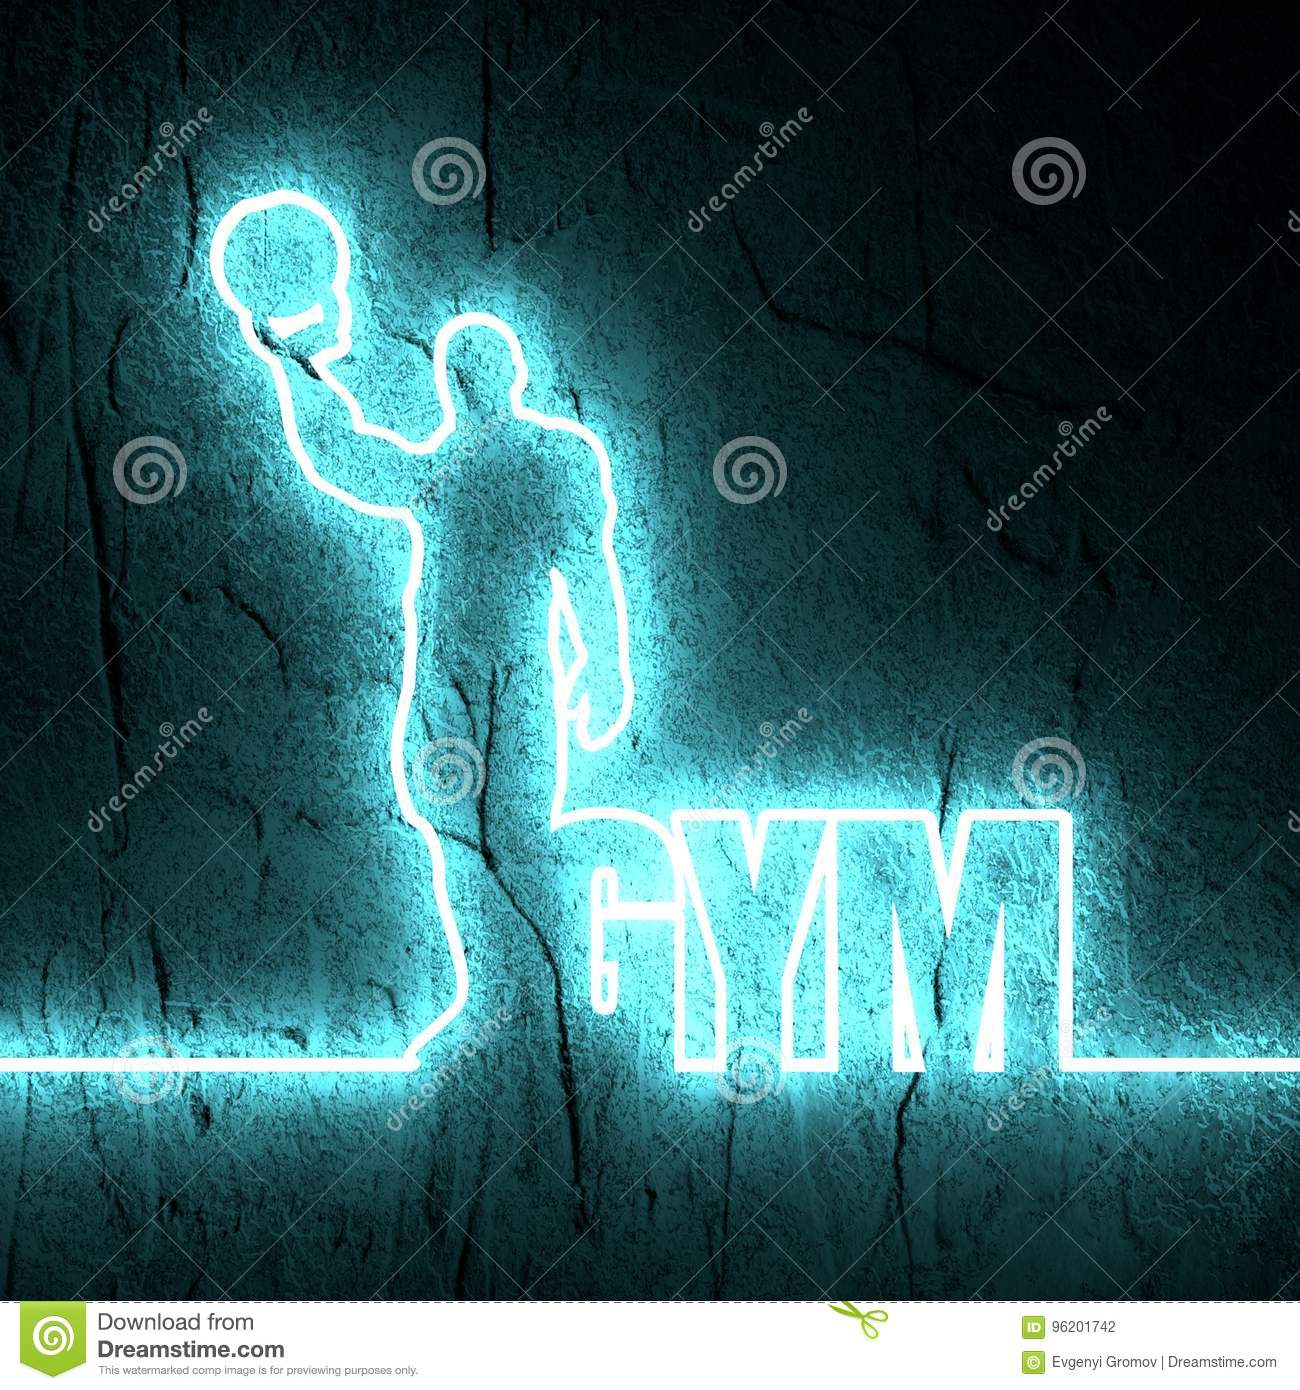 Bodybuilder Silhouette Posing Stock Photo Image Of Leaflet